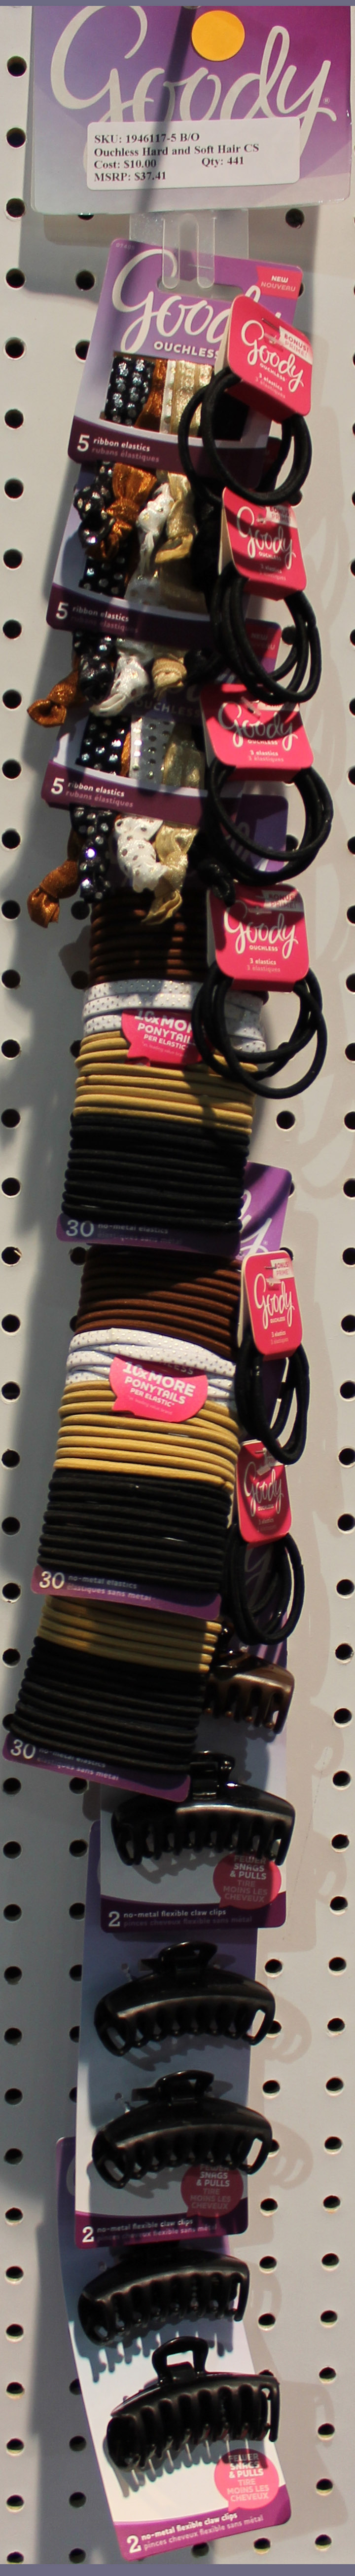 Goody Elastics and Jaw Clip Clip Strip of 9 Items